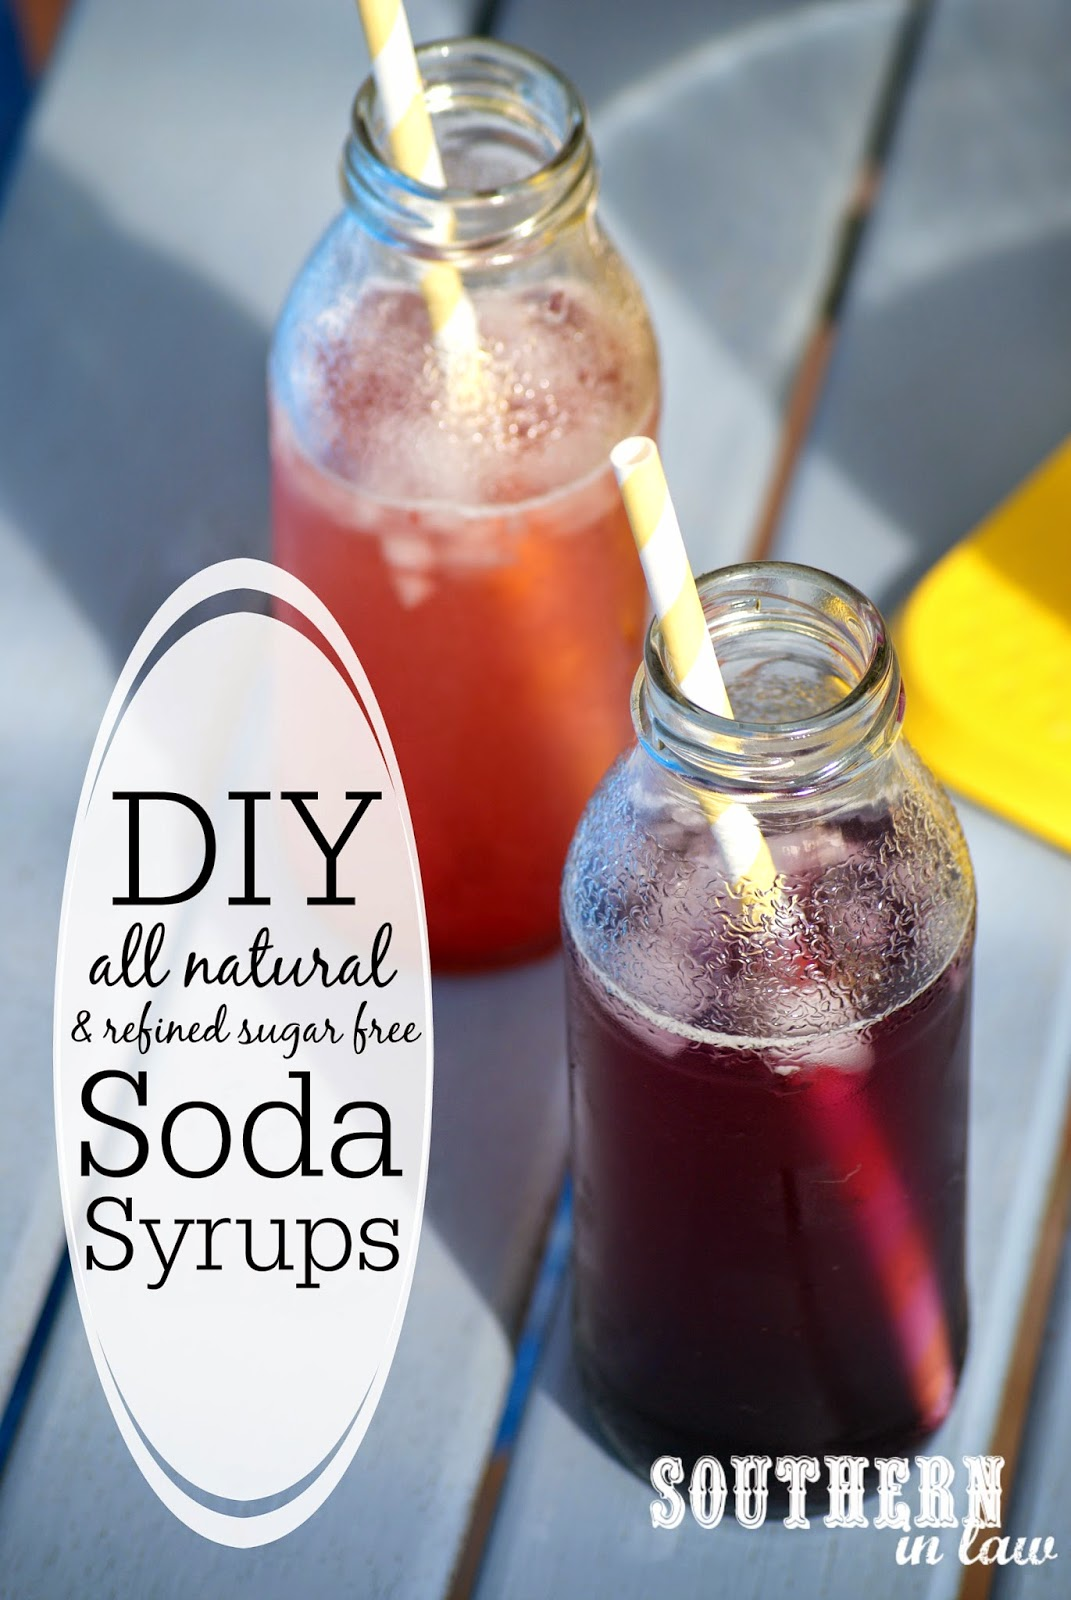 DIY Healthy SodaStream Syrup Recipe - low fat, gluten free, sugar free, all natural